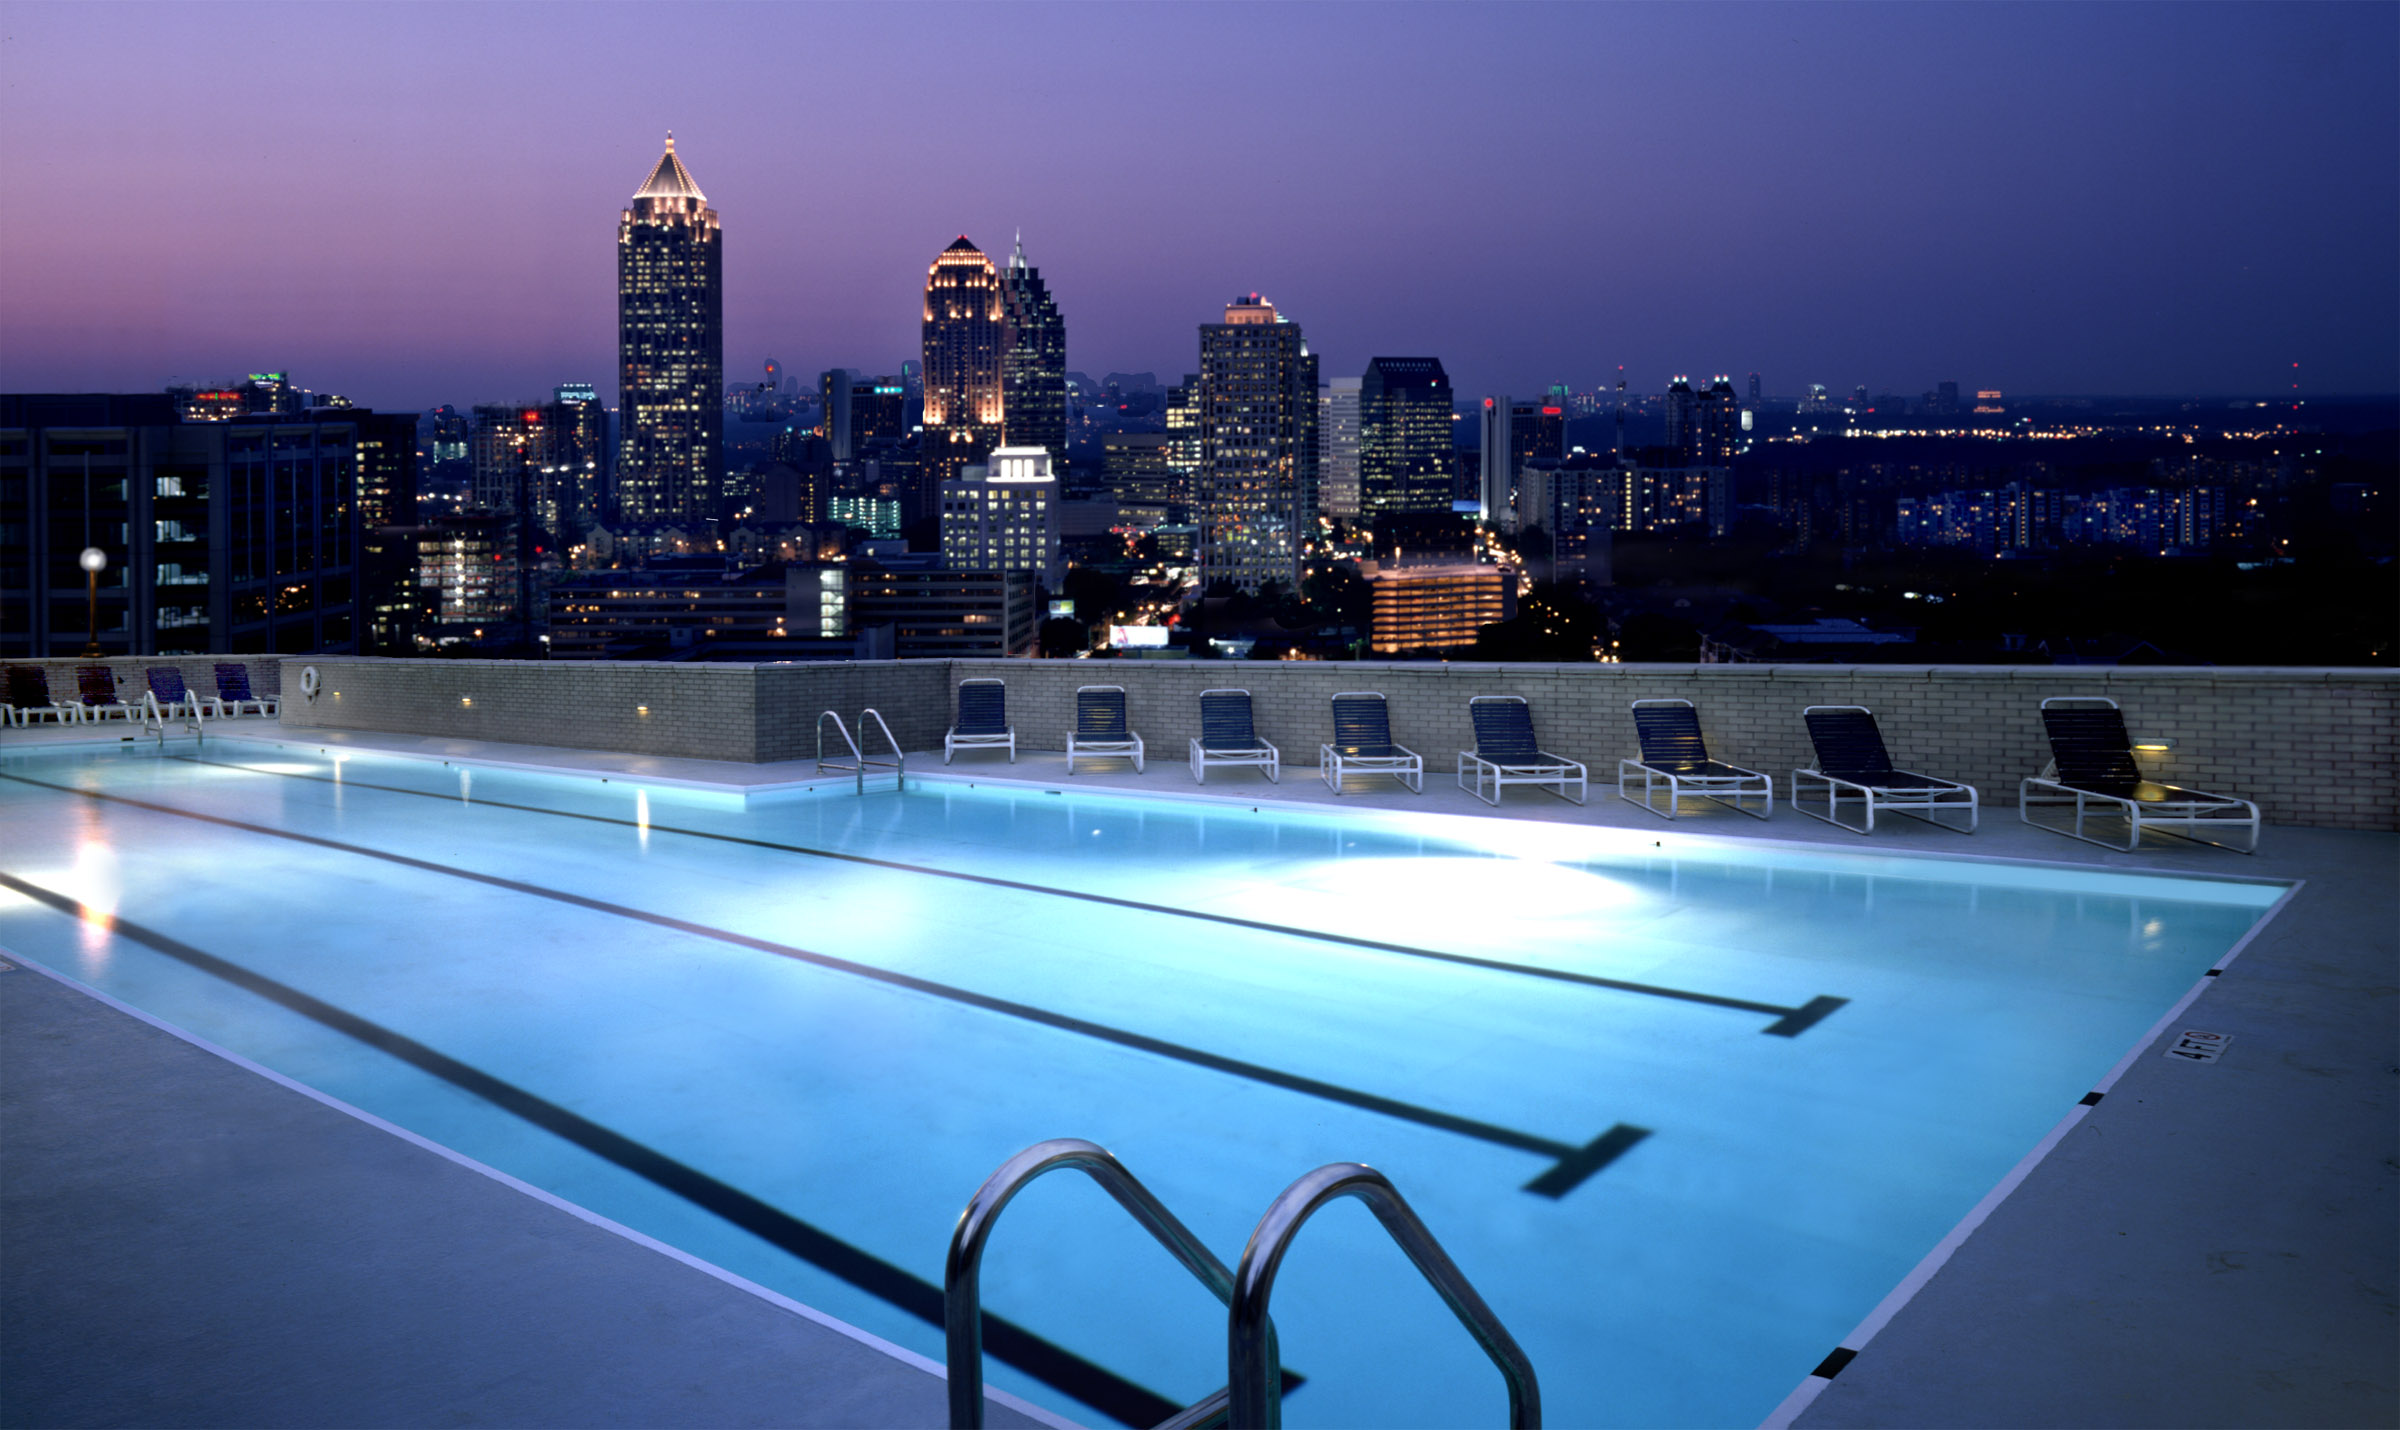 Rooftop Pool At Night The Celebration Society